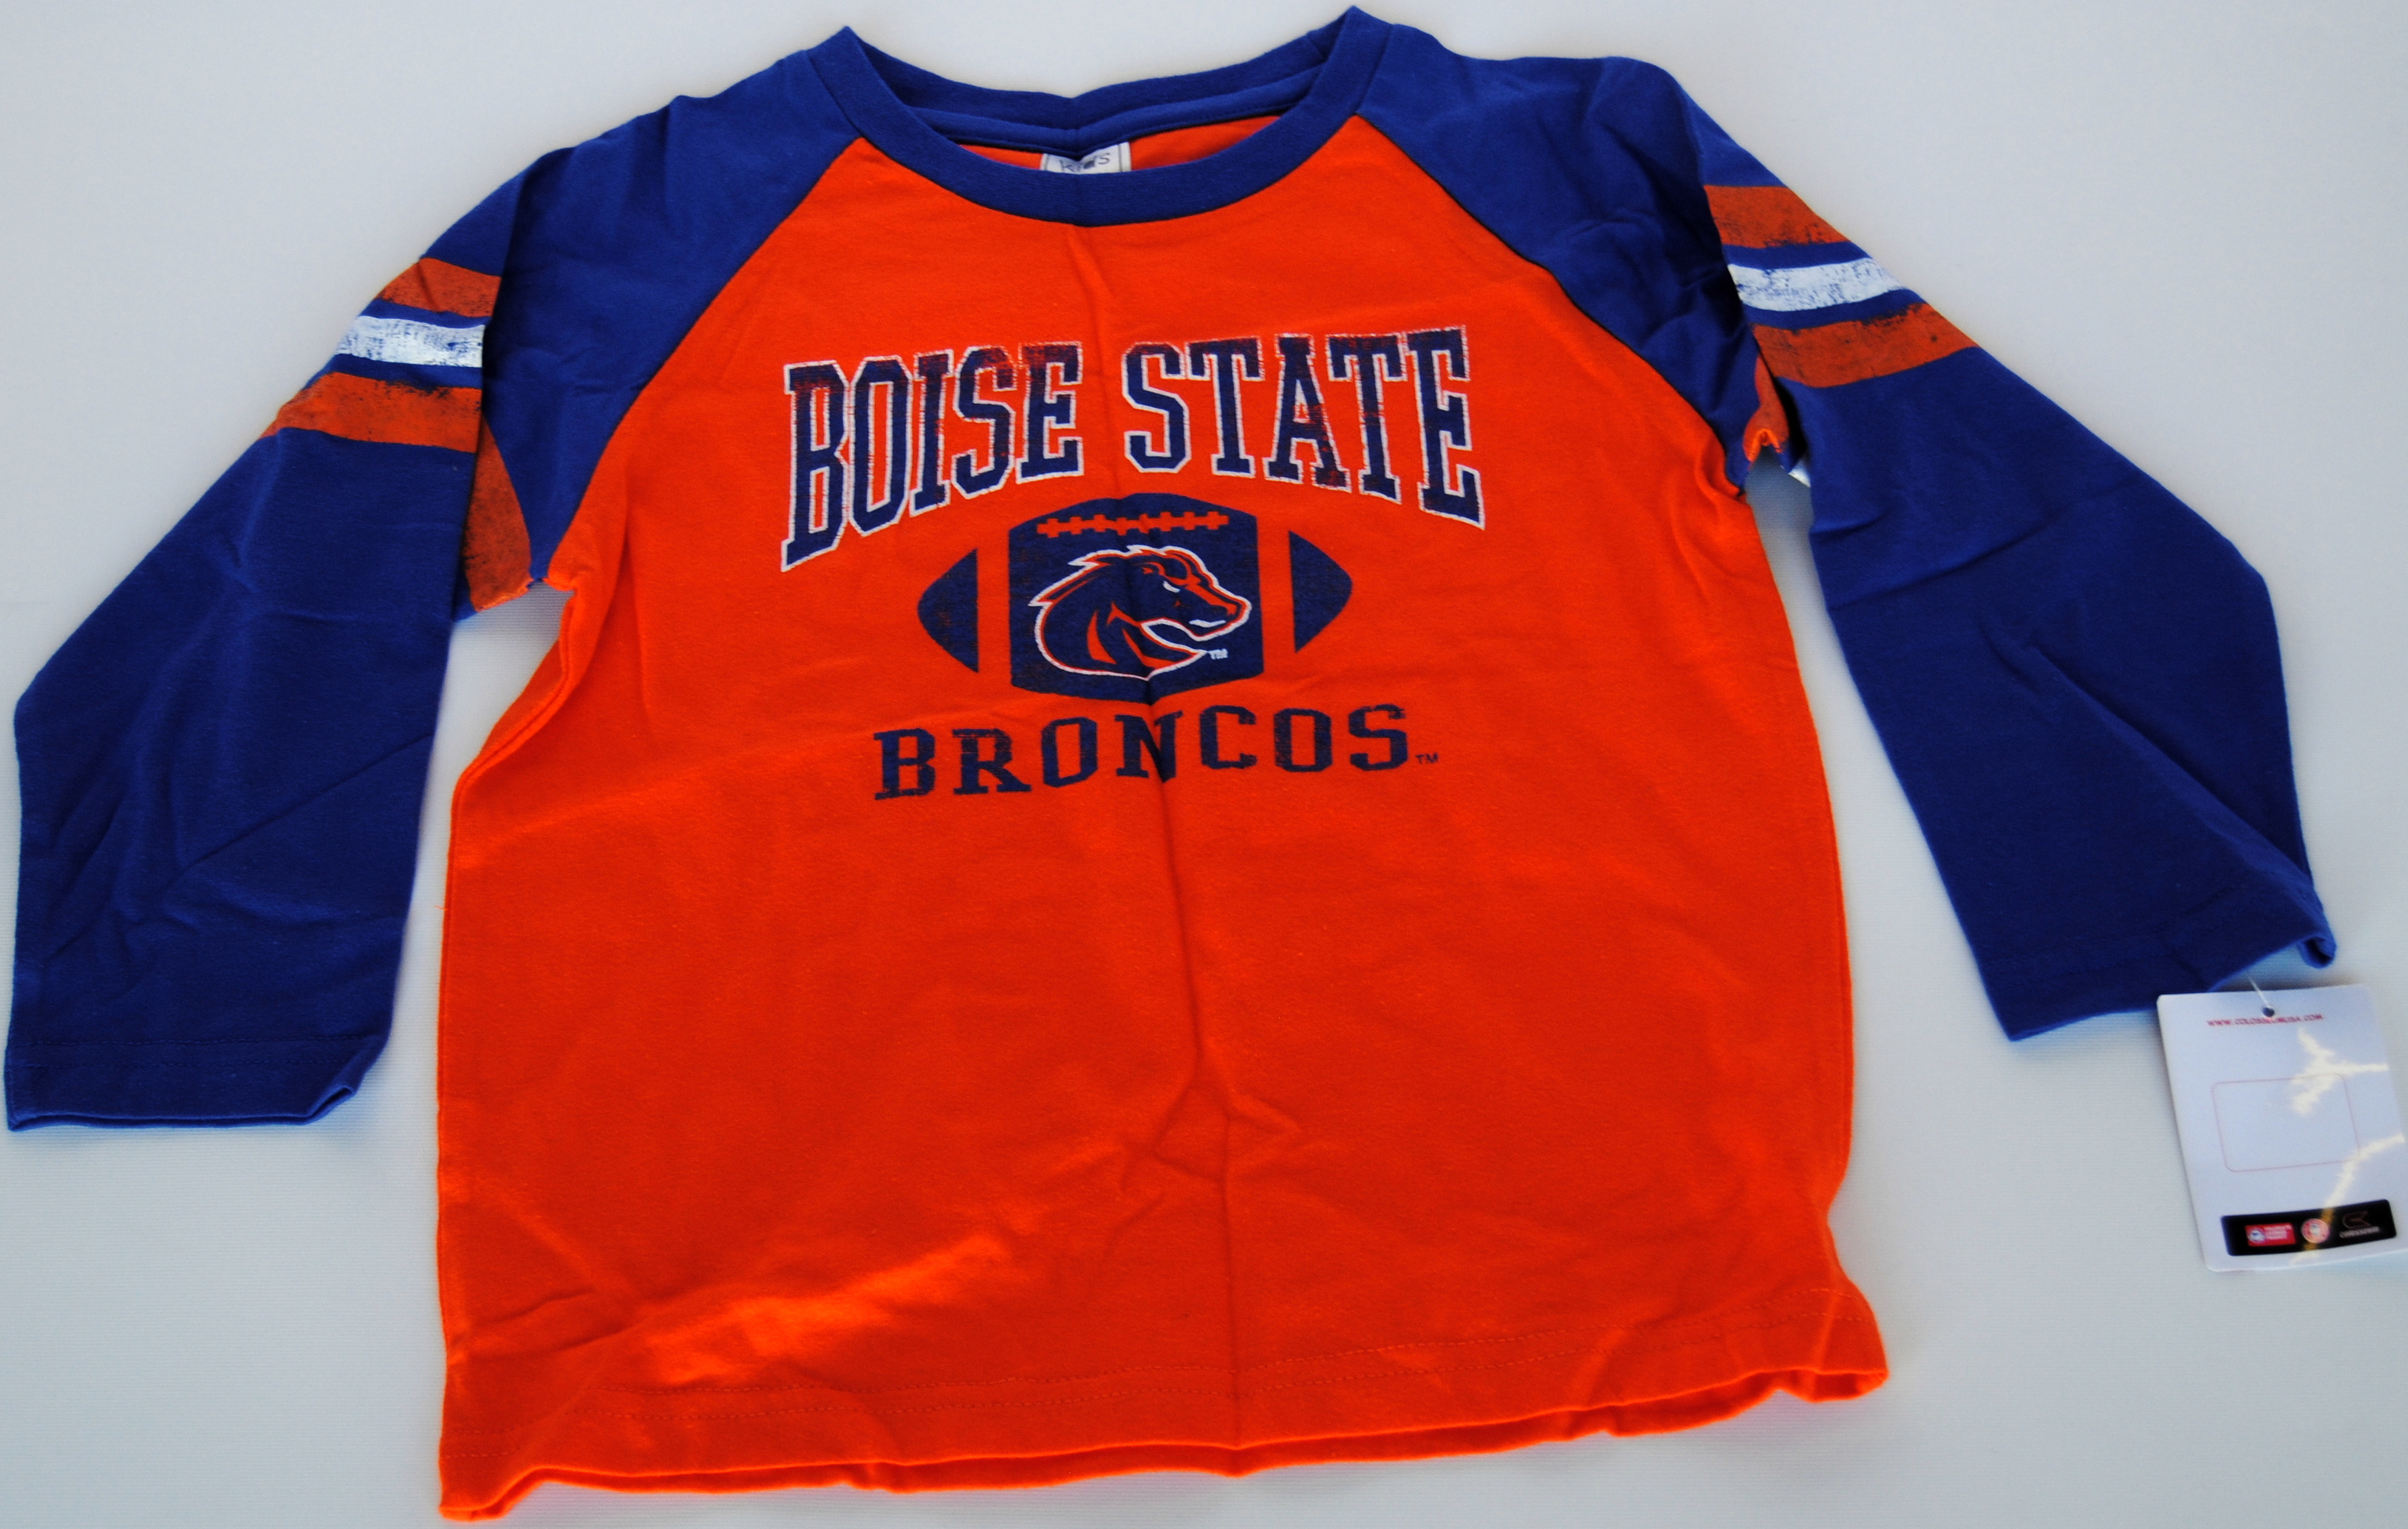 Colosseum Athletics Boise State Broncos Colosseum Orange Blue Infant Long Sleeve T-Shirt (3T) at Sears.com